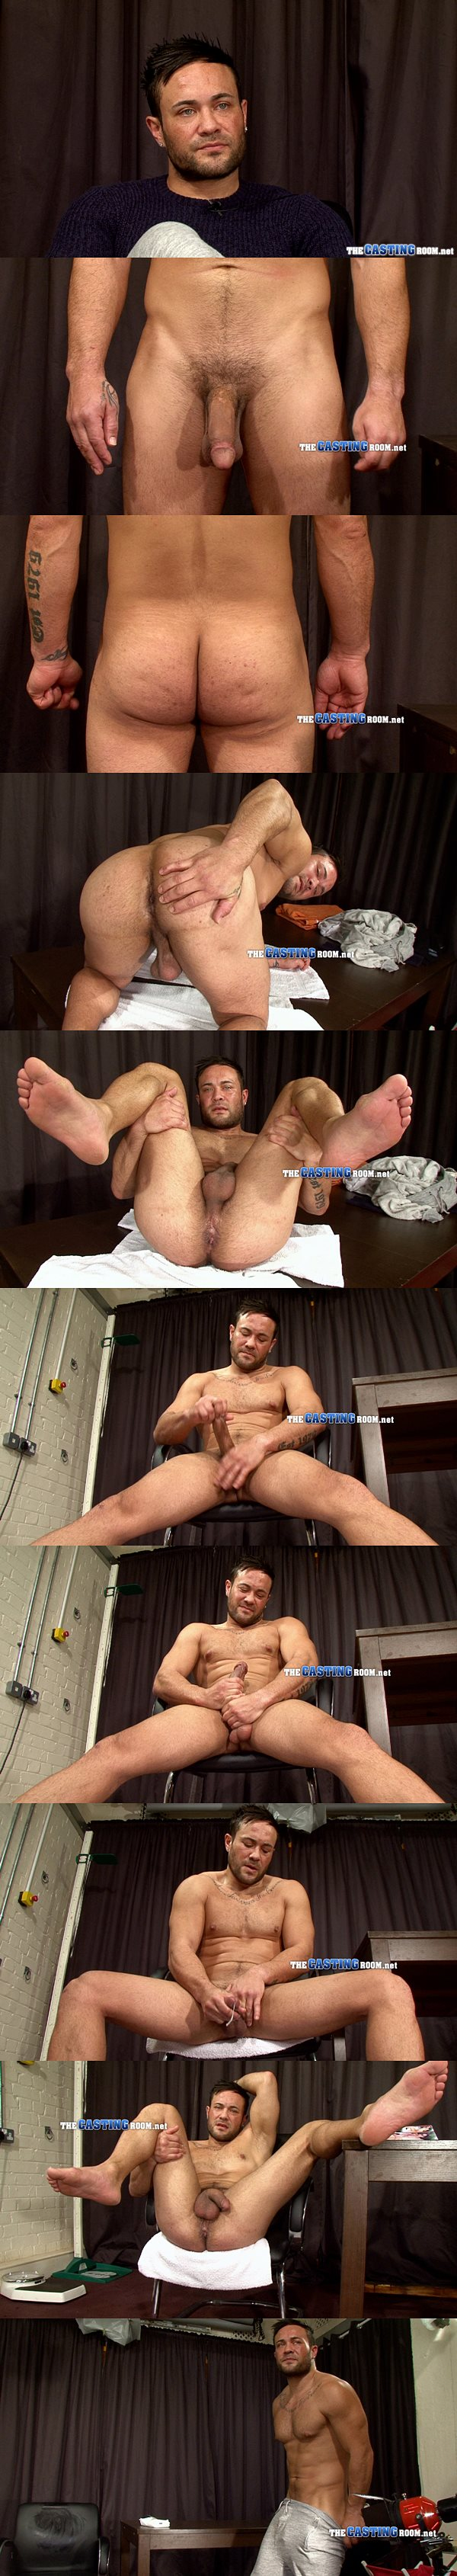 Sports therapist, macho personal trainer Shane jerks the cum out of his big hard dick at Thecastingroom